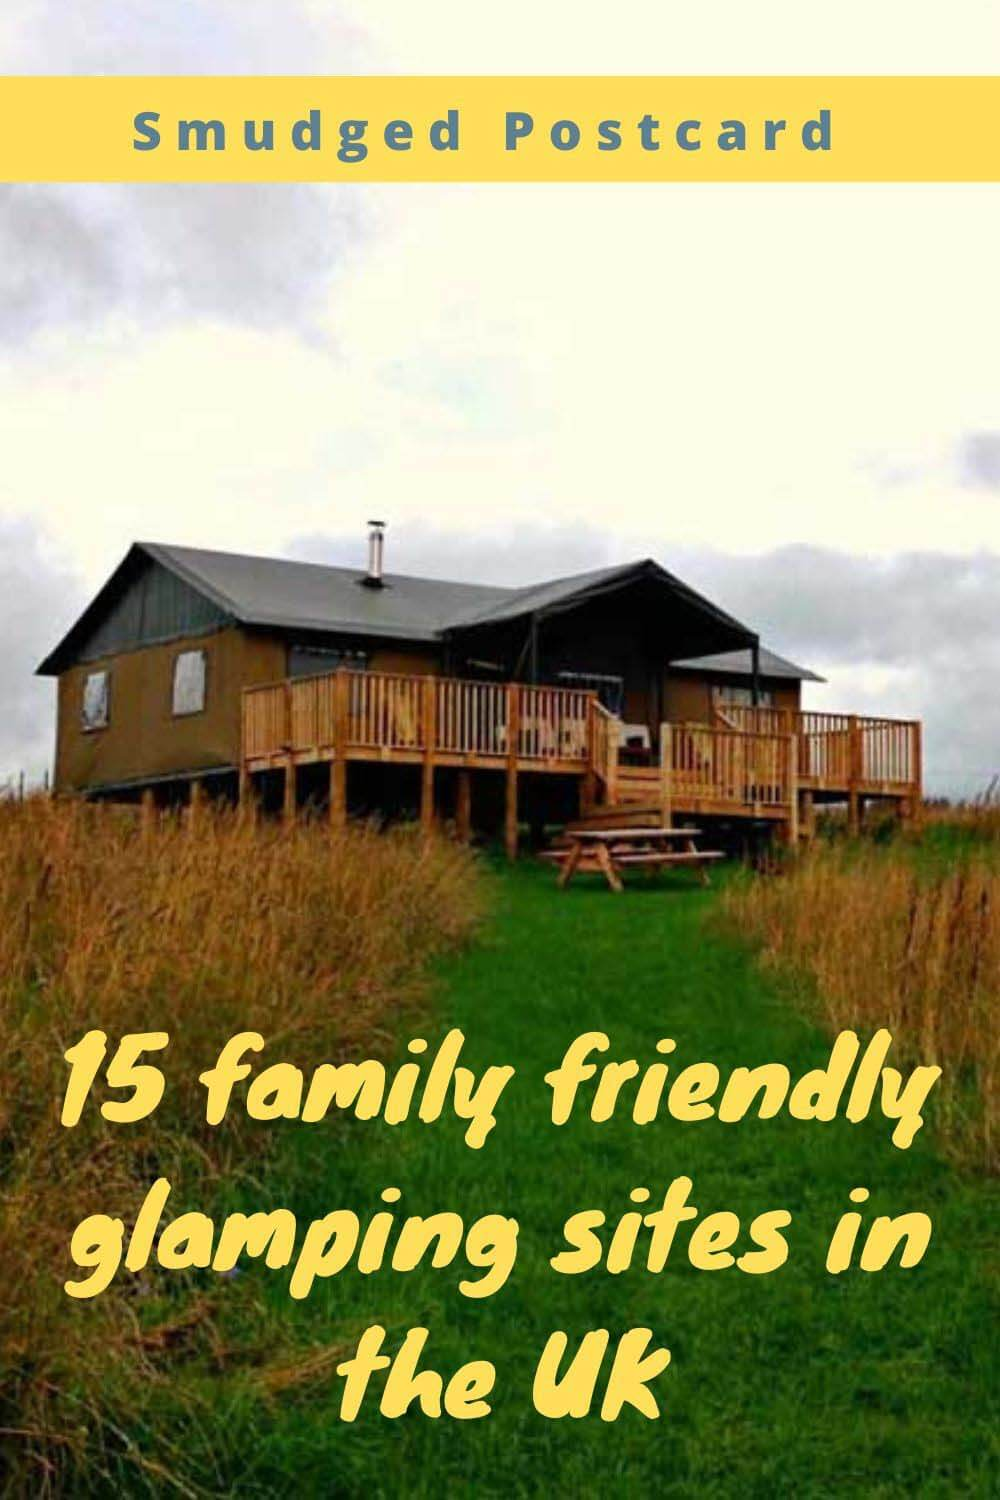 family glamping in the UK